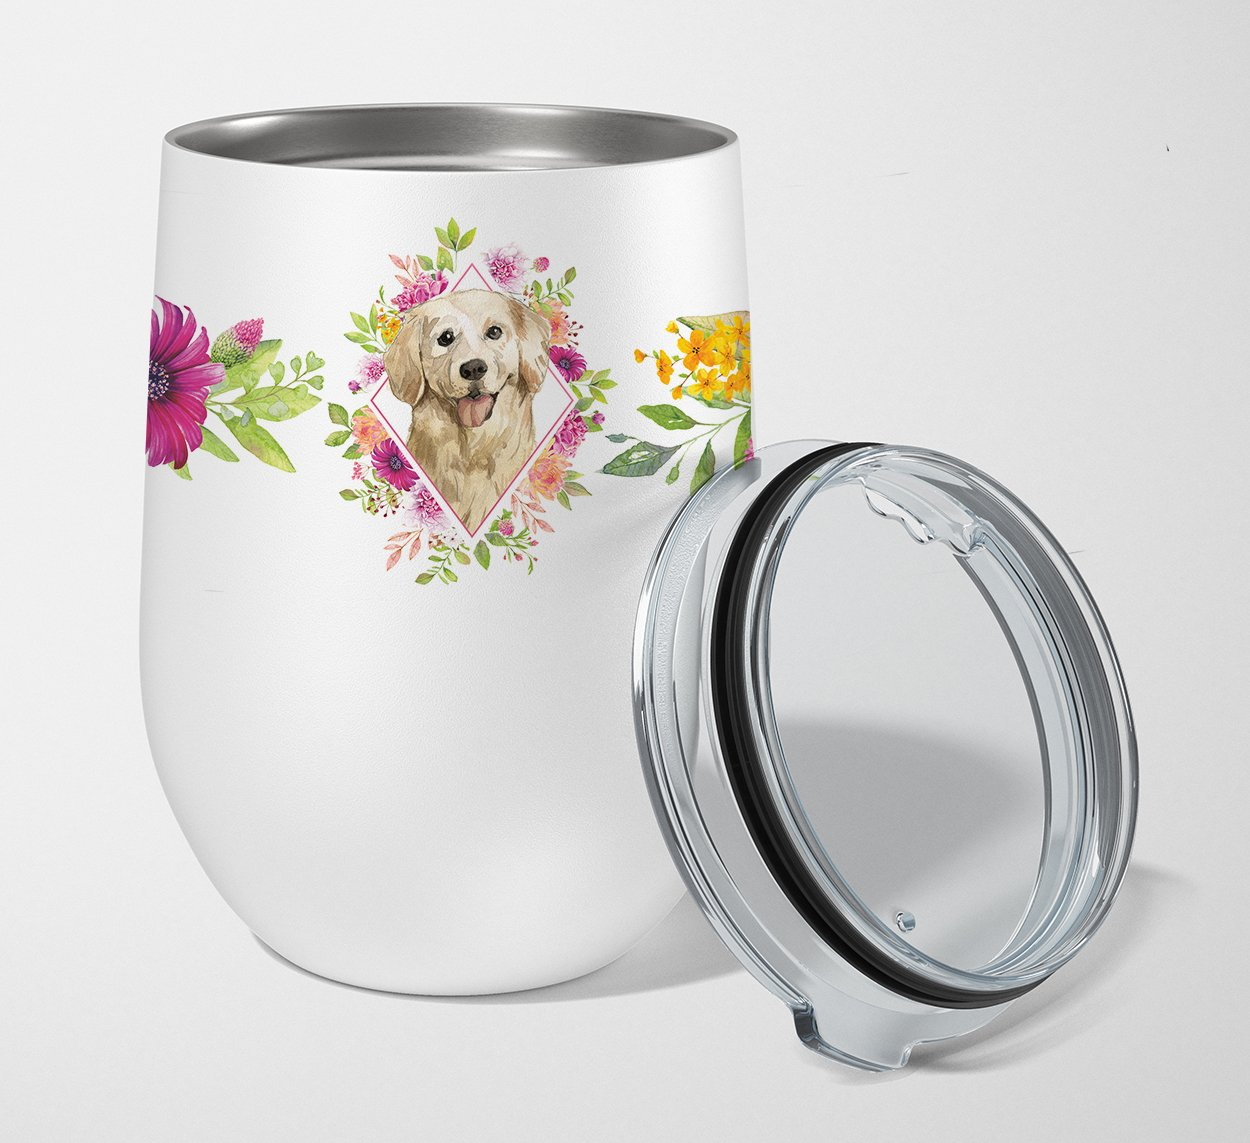 Golden Retriever Pink Flowers Stainless Steel 12 oz Stemless Wine Glass CK4235TBL12 by Caroline's Treasures